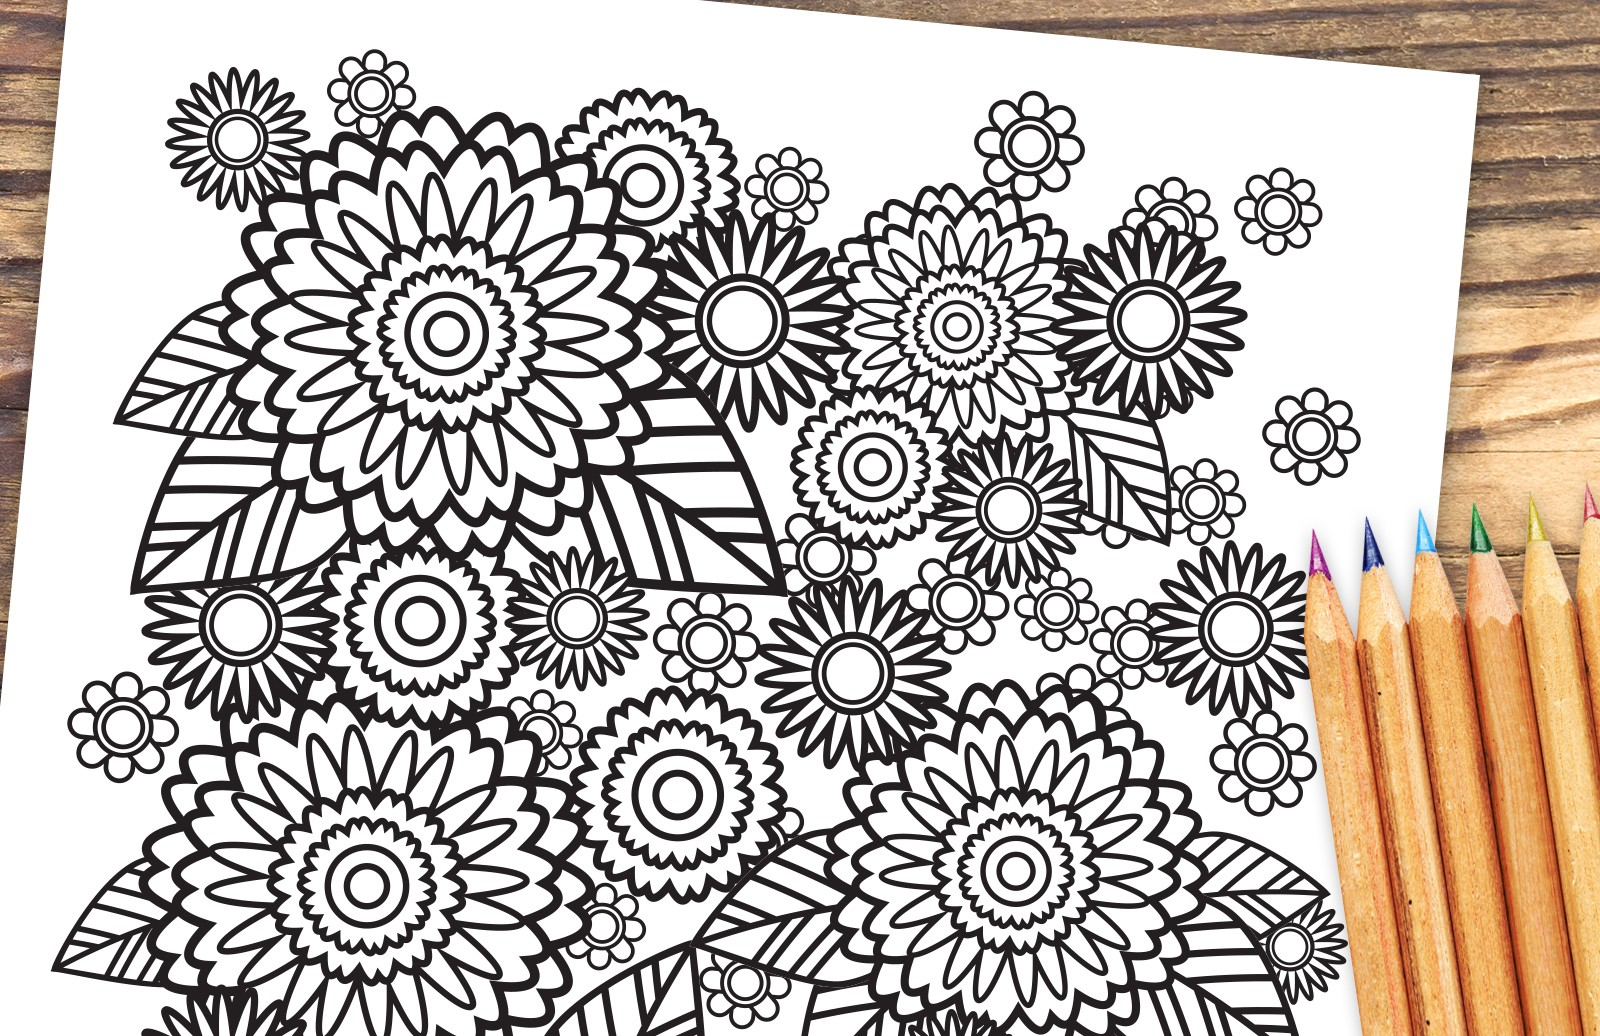 Stress relief coloring pages - Stress Relief Coloring Pages Preview 1